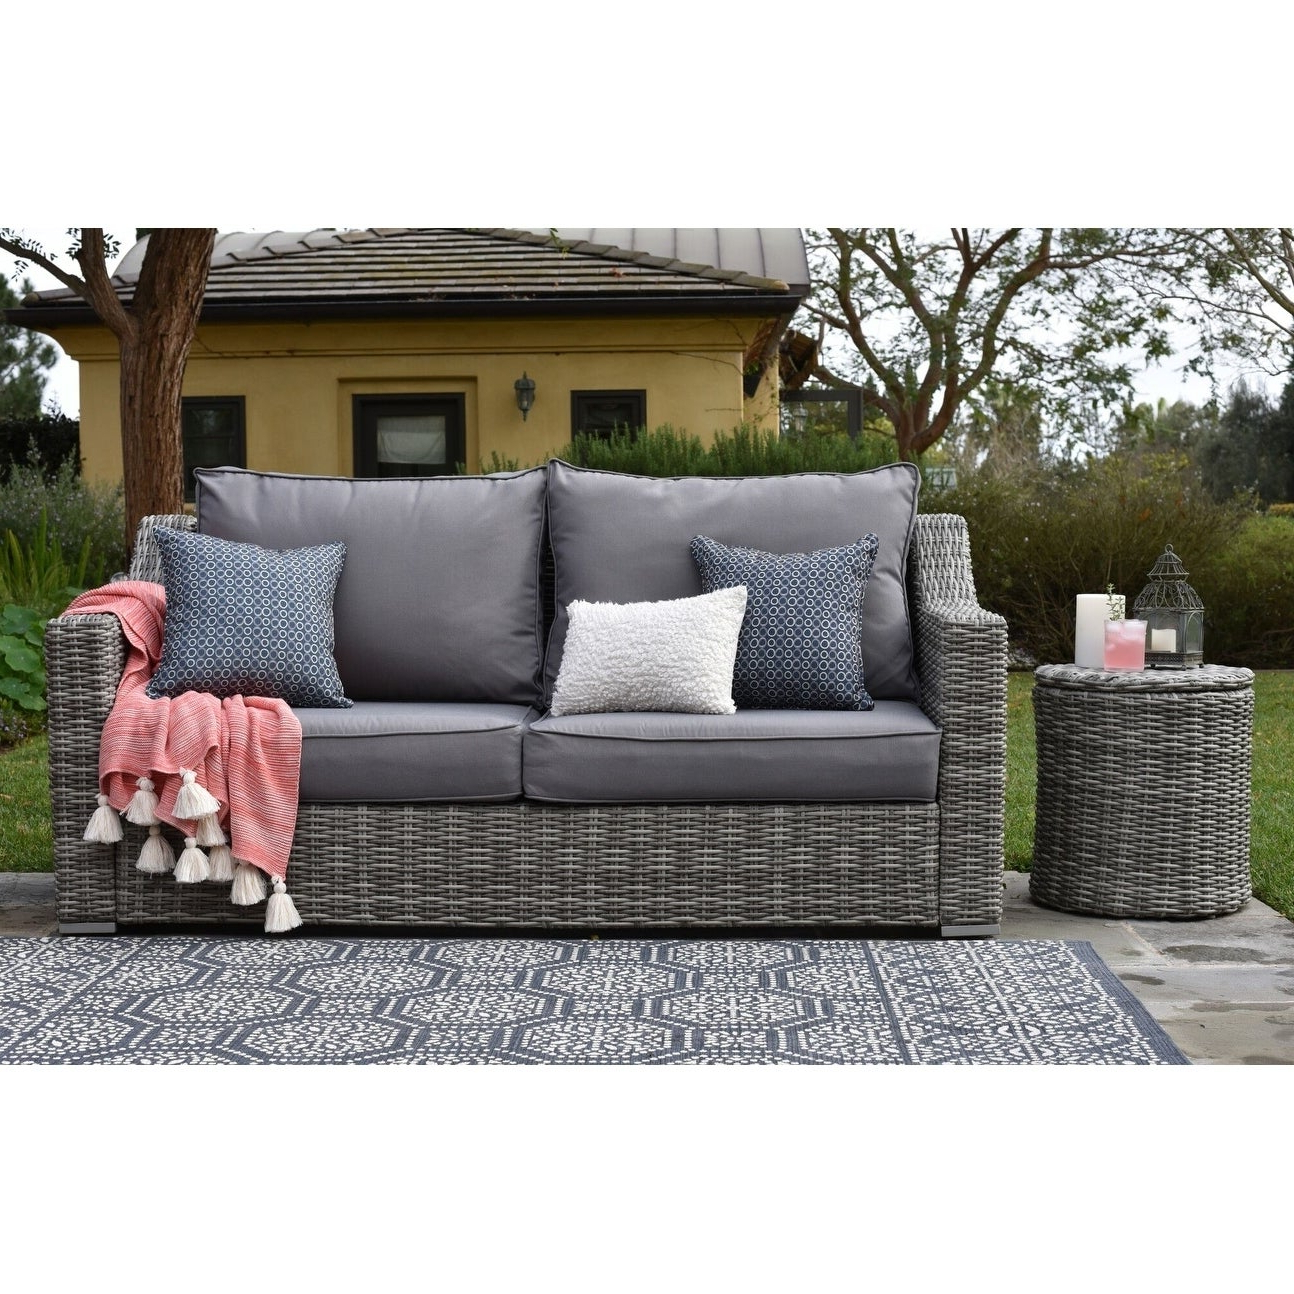 Favorite Elle Decor Vallauris Outdoor Sofa For Vallauris Storage Patio Sectionals With Cushions (View 10 of 25)